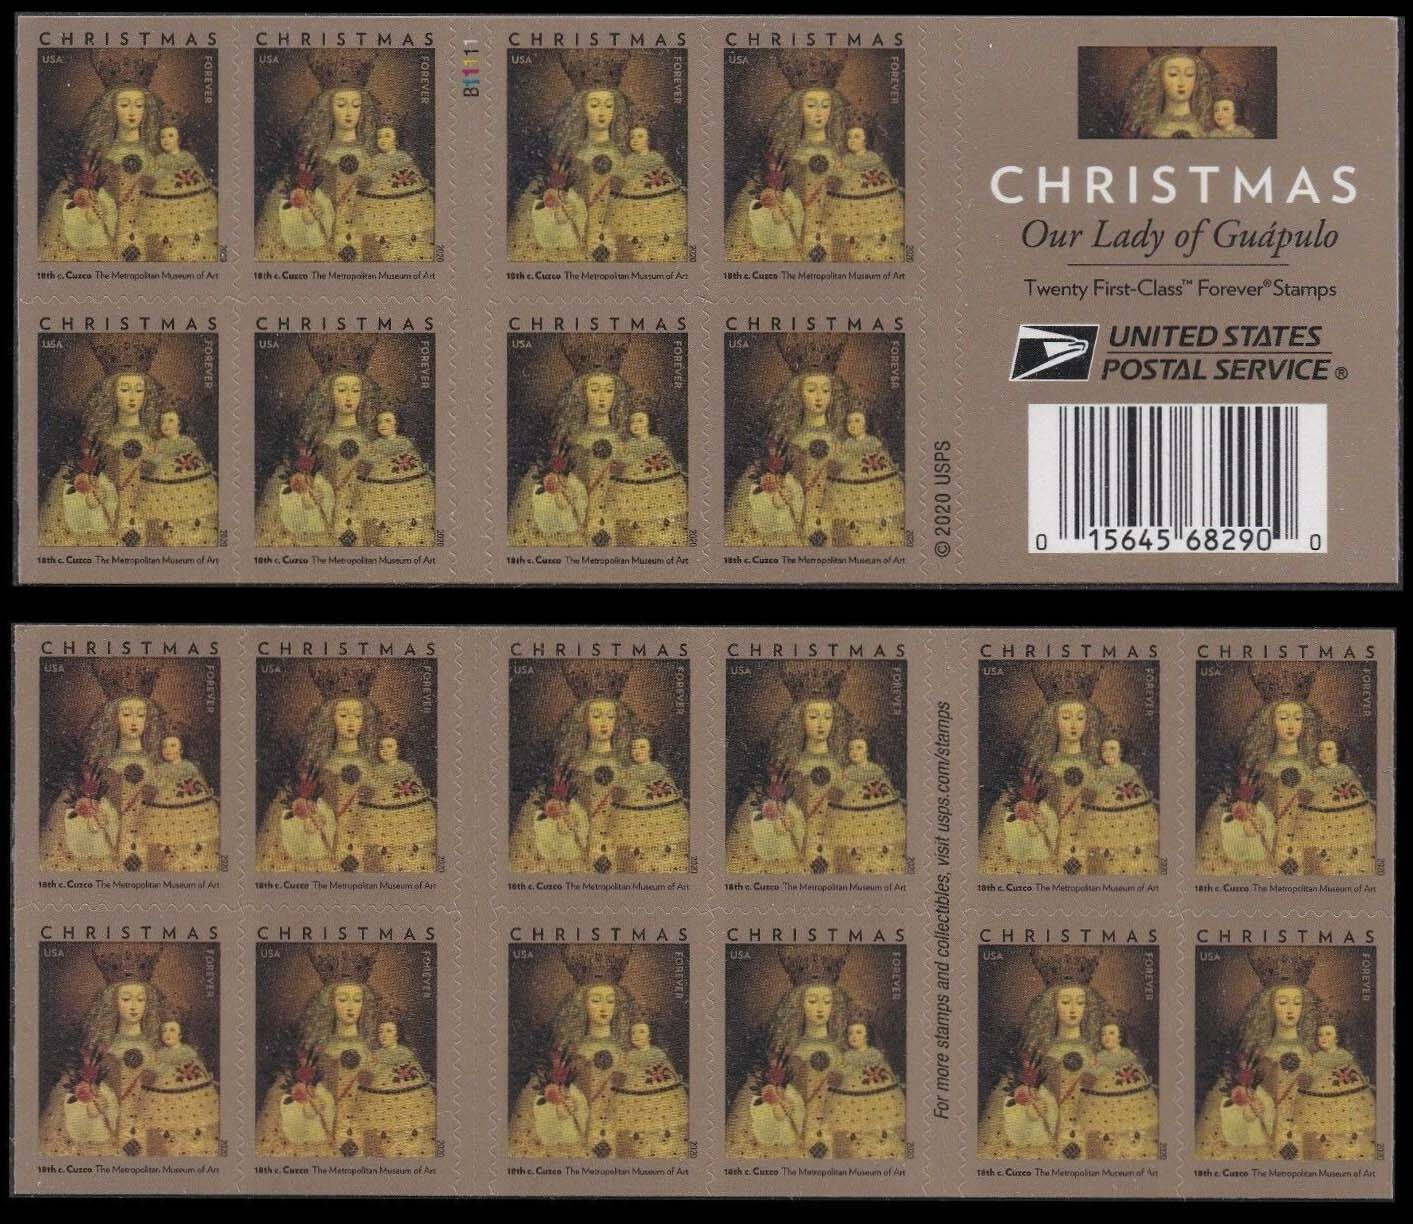 Scott #5541, Double sided Booklet Pane of 20, Christmas, Our Lady of Gudpulo